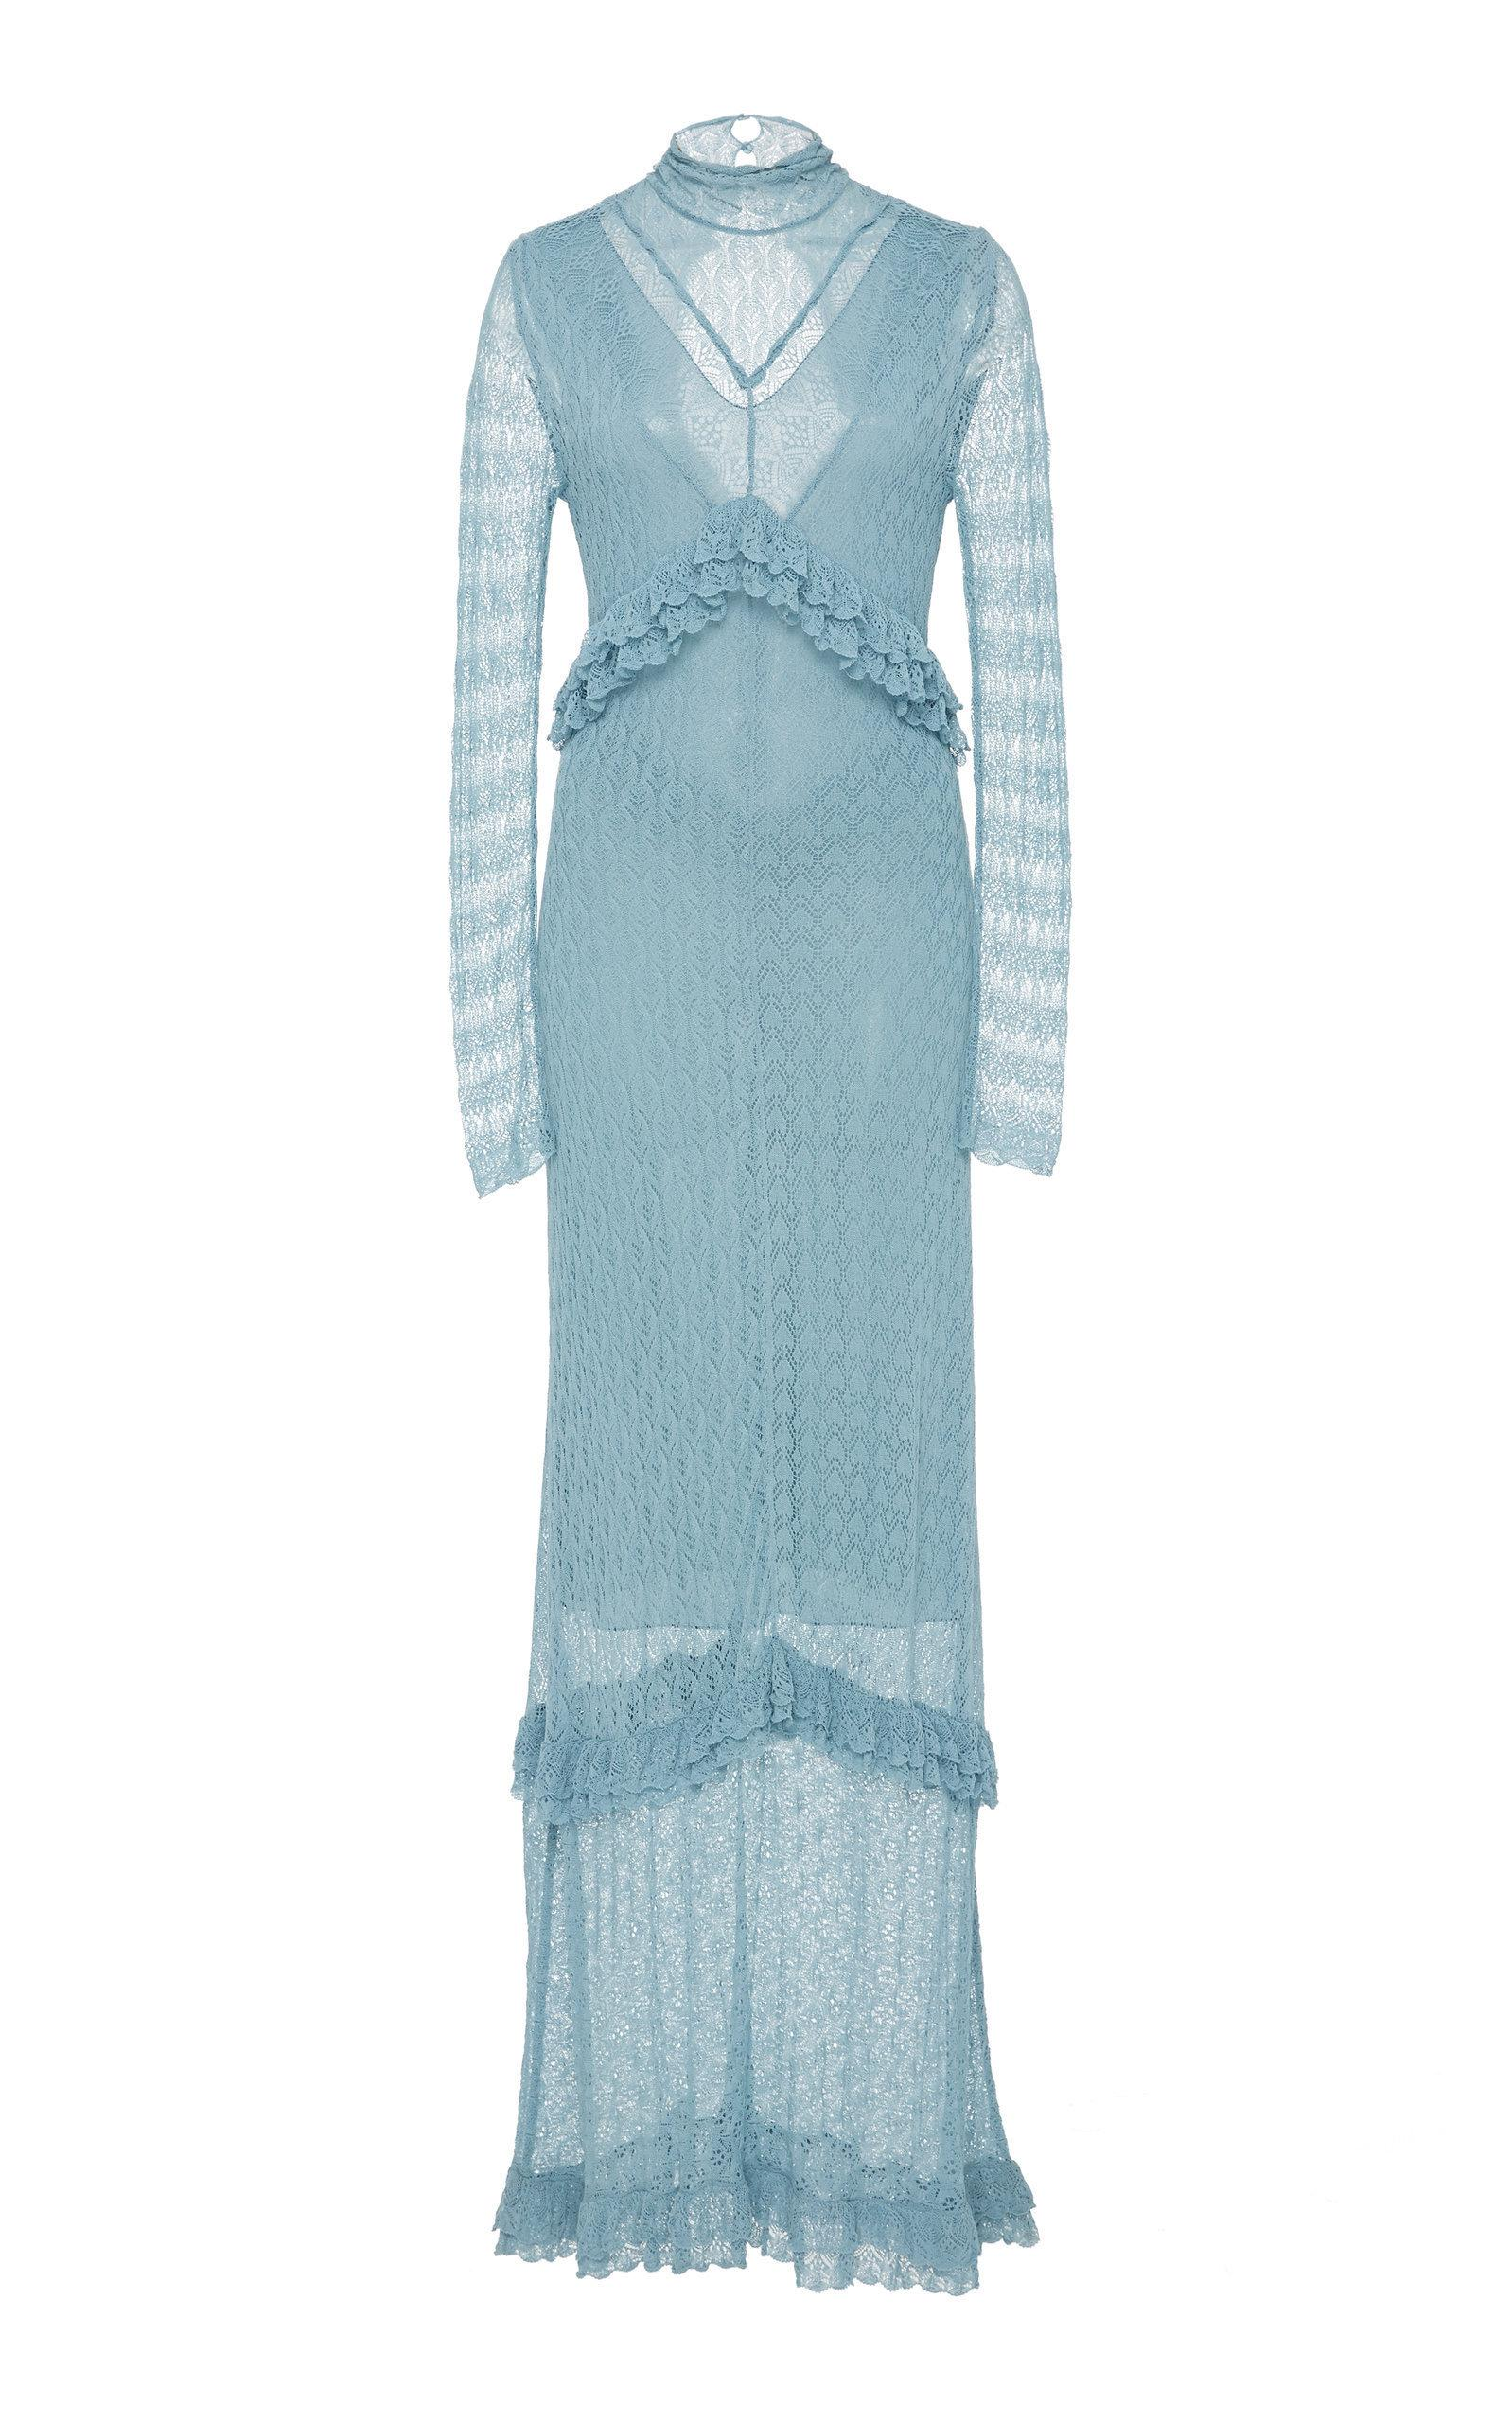 Alexa Chung Alexachung Patchwork Fine Knit Lace Dress In Blue